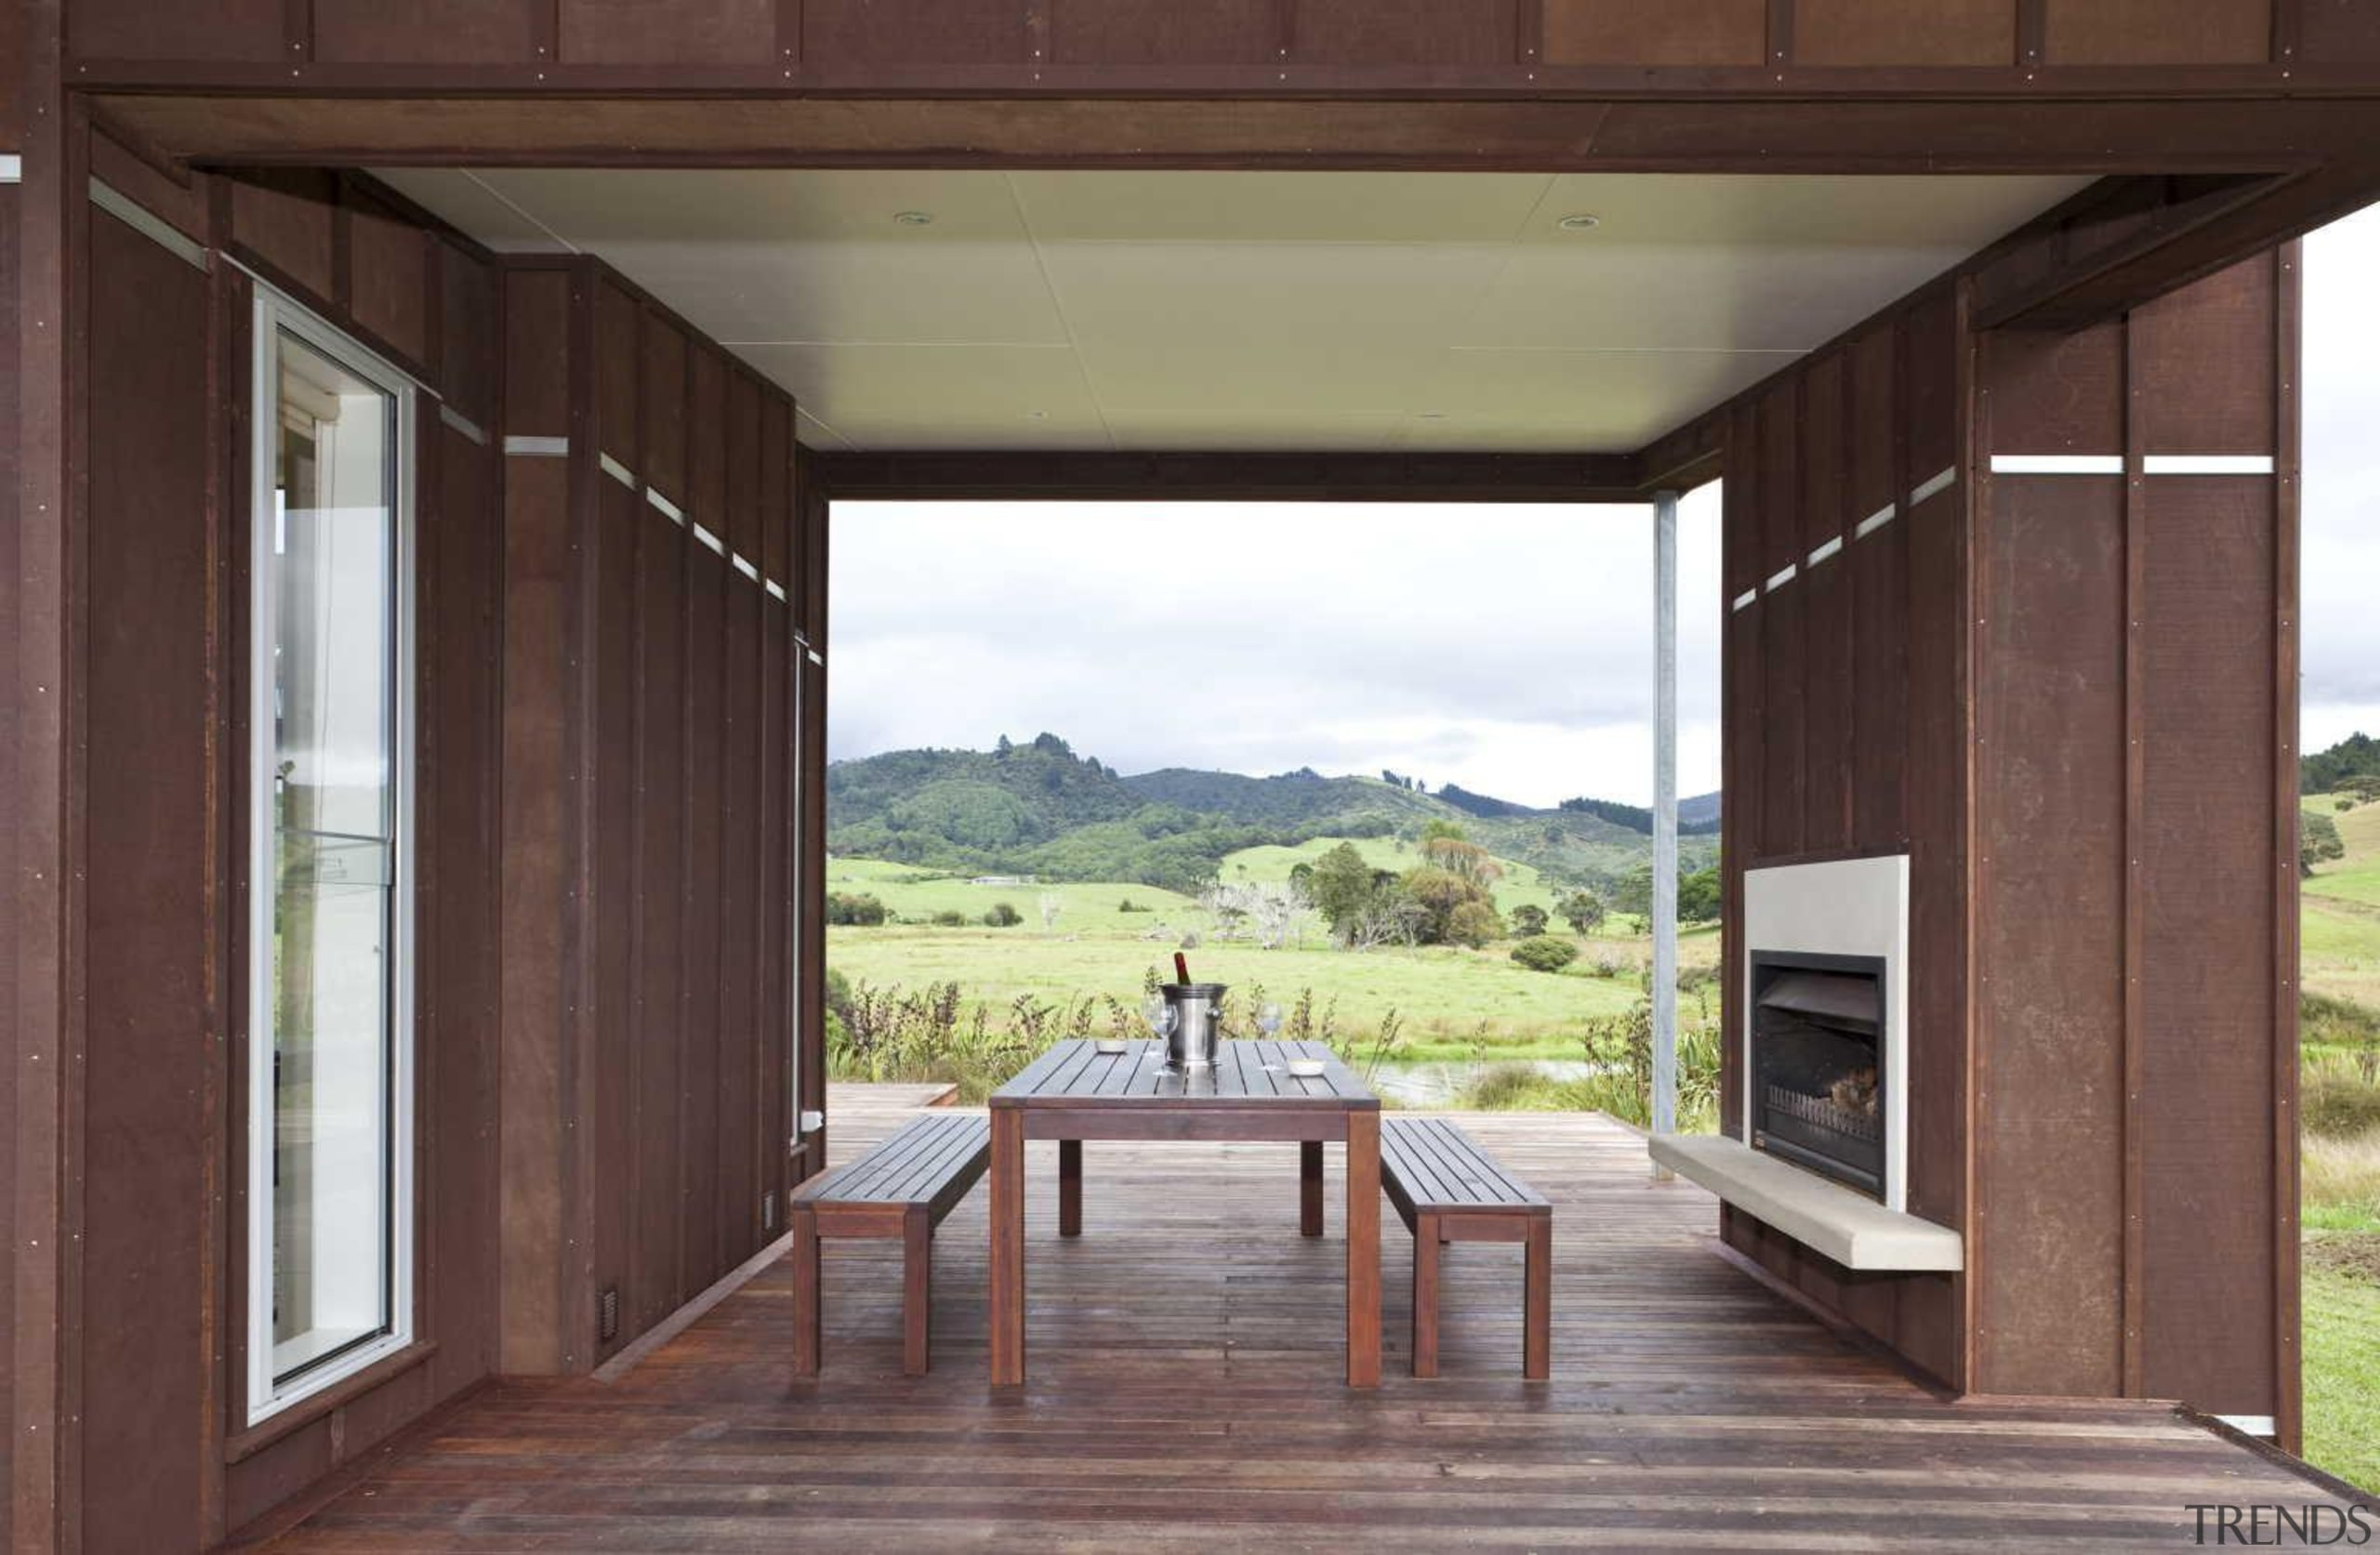 Timber outdoor dining fireplace - Outdoor Dining Fireplace architecture, estate, house, interior design, real estate, window, wood, black